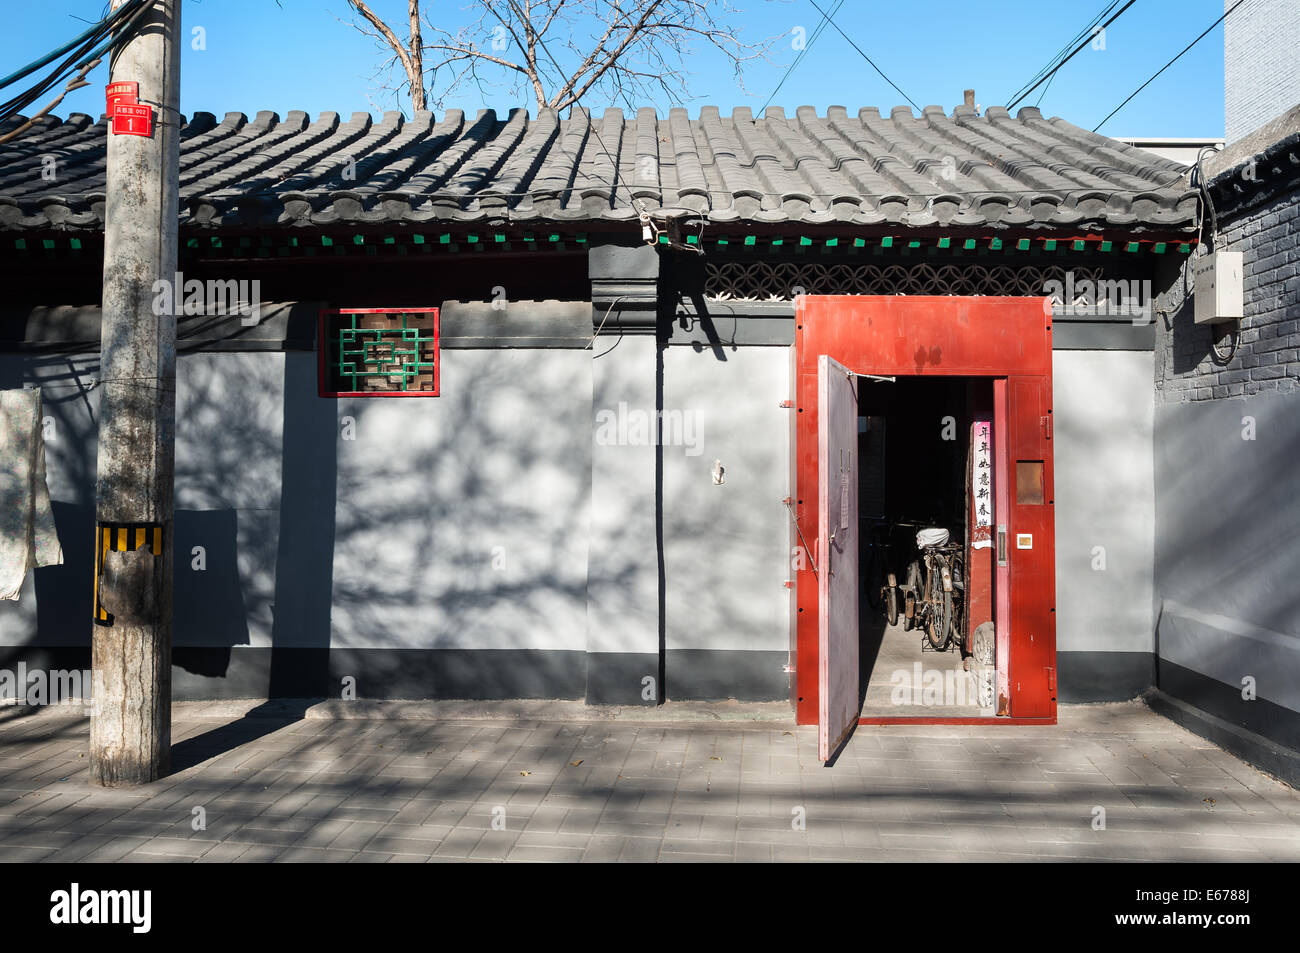 Typical hutong architecture, Beijing, China - Stock Image